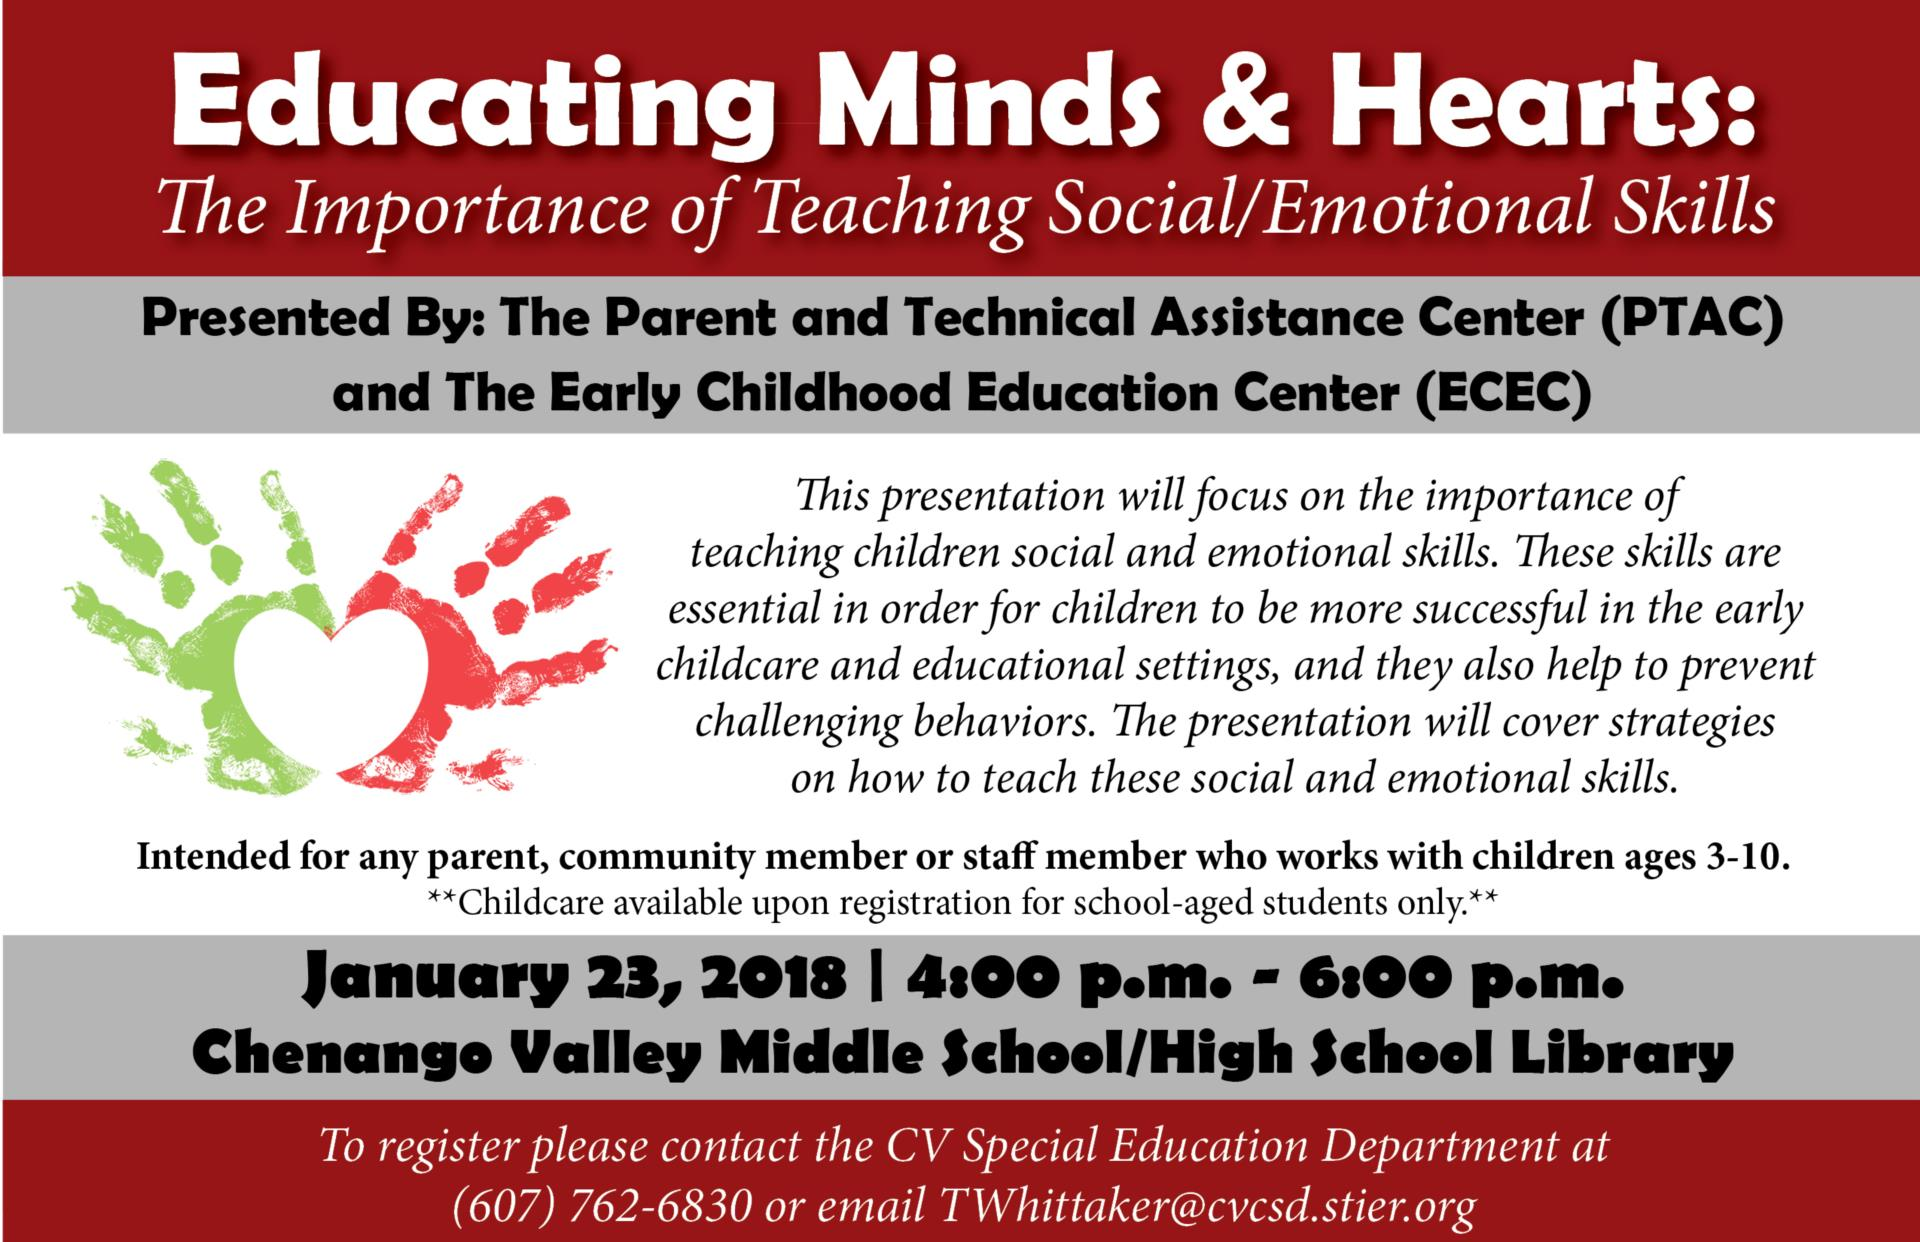 Educating Minds and Hearts The Importance of teaching social and emotional skills workshop january 23 2018 4 p m to 6 p m in the chenango valley middle school/high school library to register please contact special education department at 607-762-6830 or email twhittaker@cvcsd.stier.org